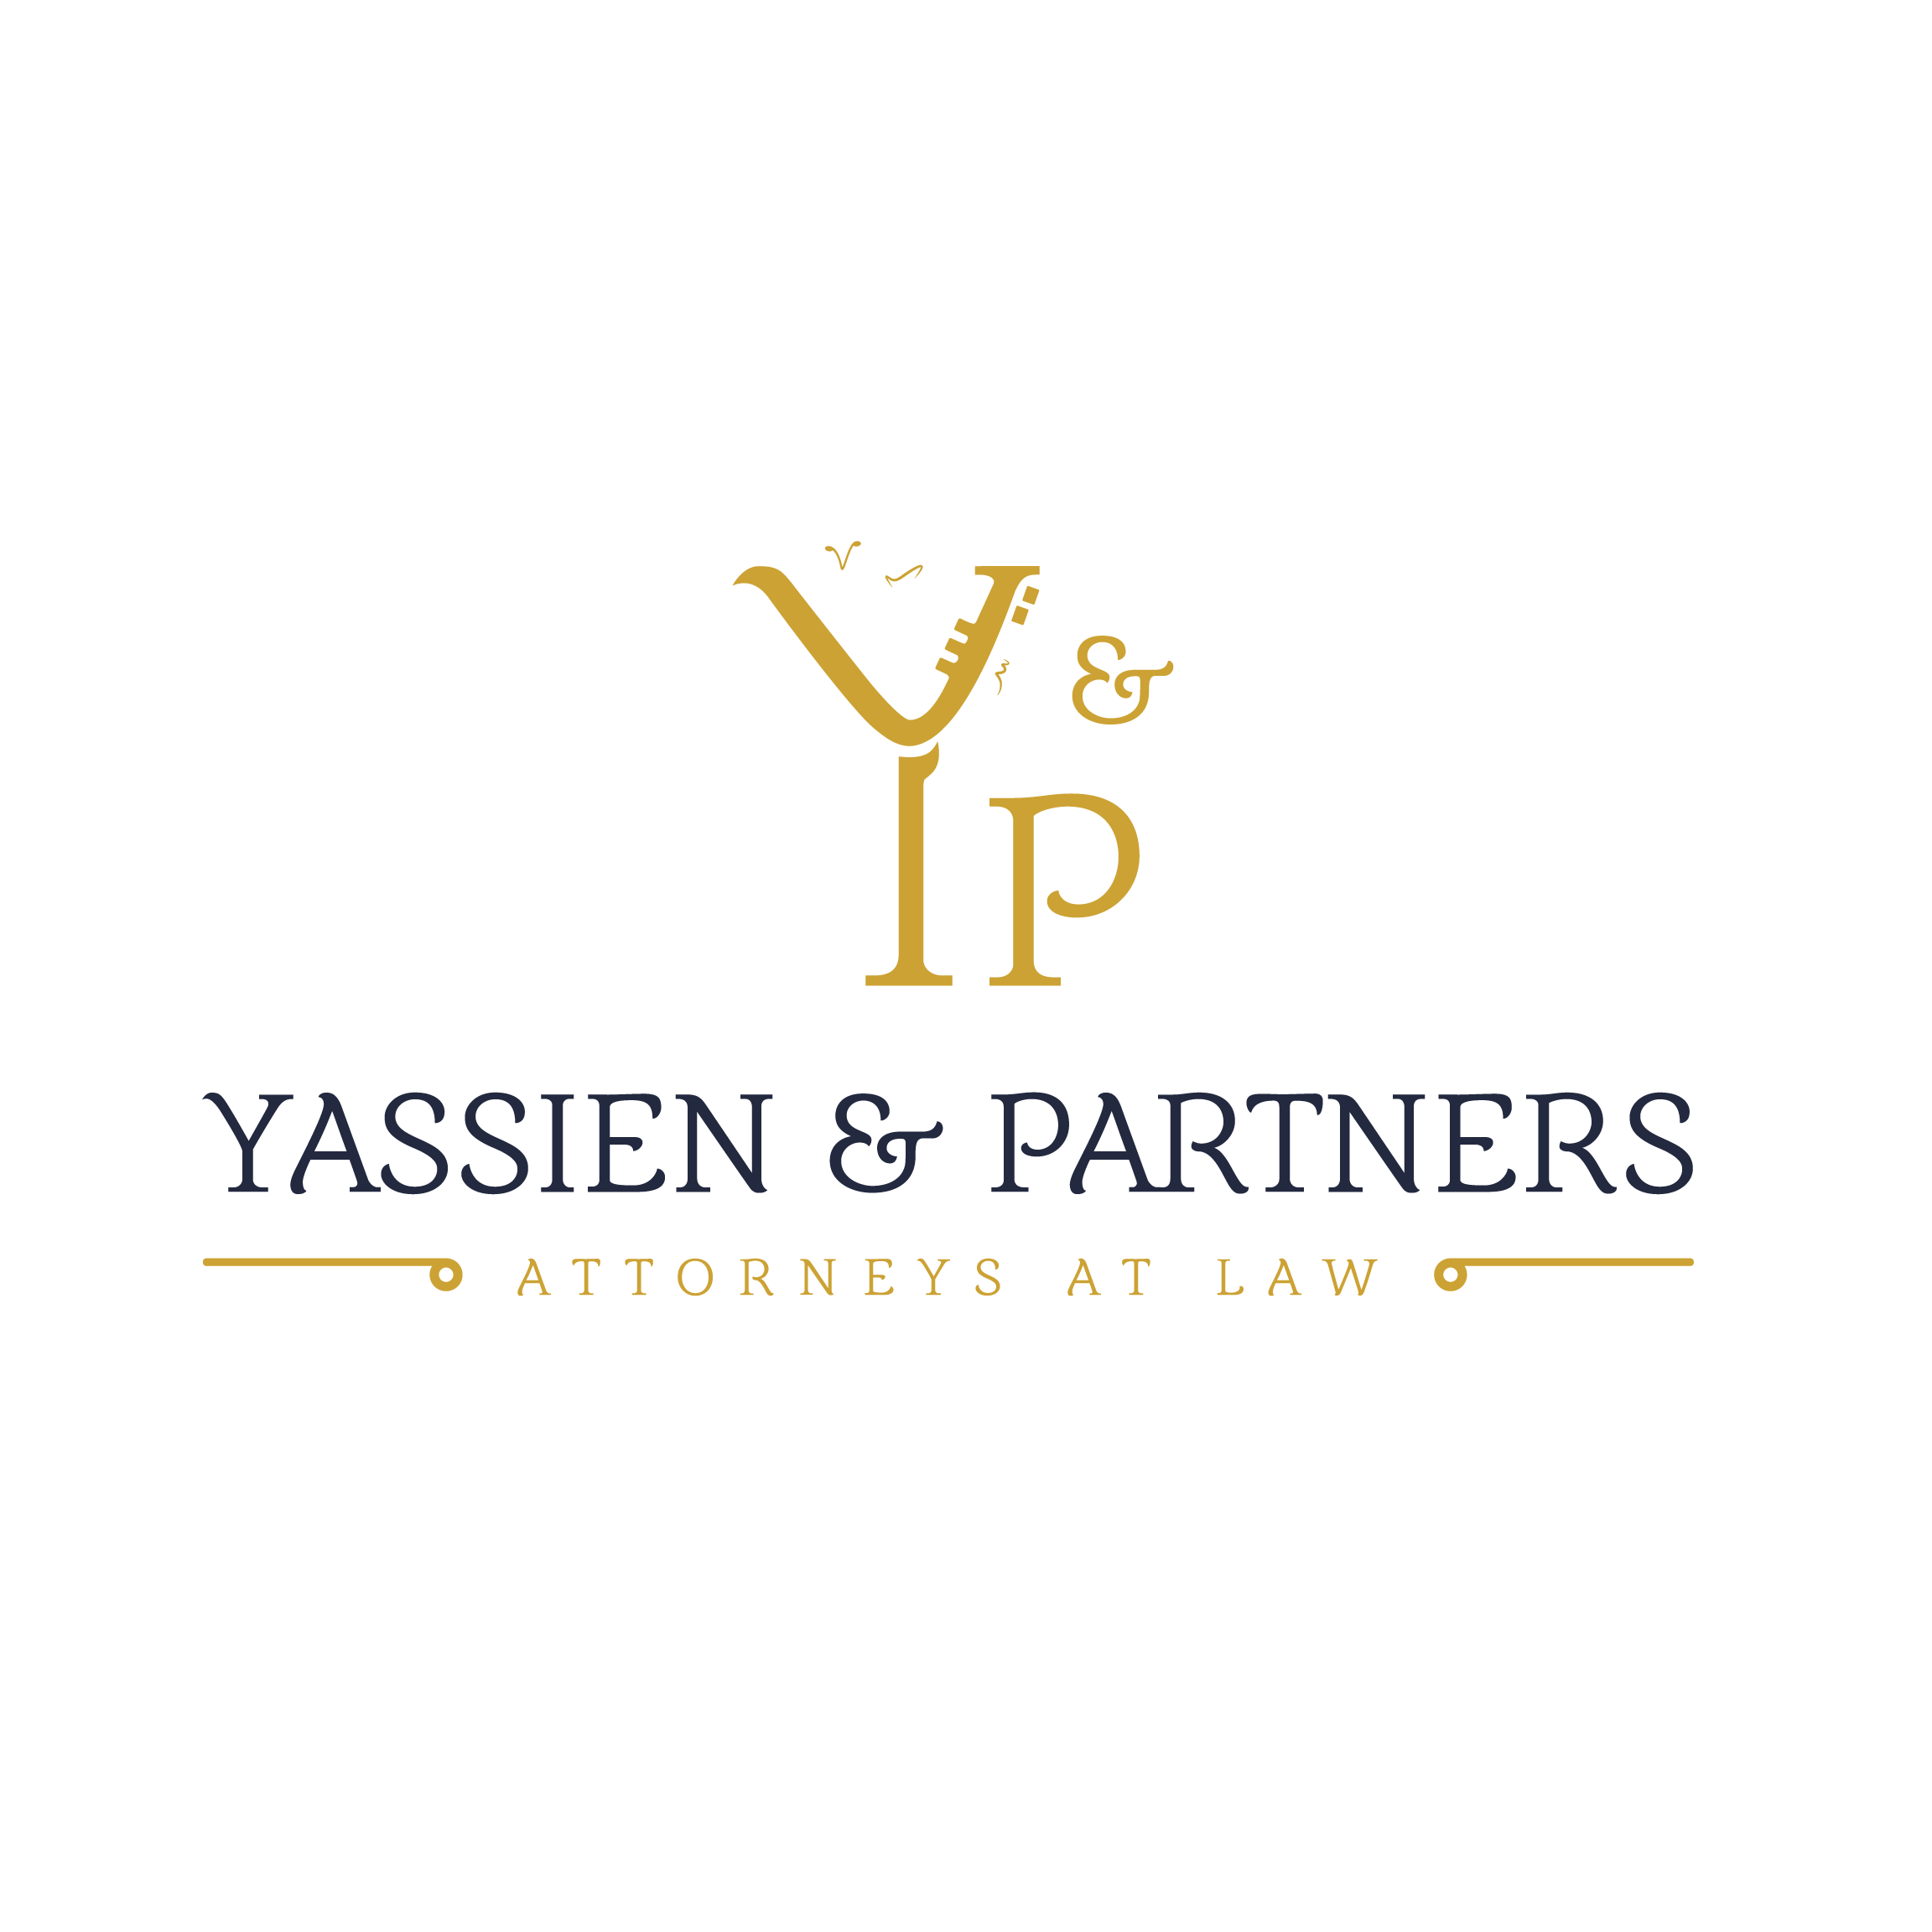 Yassien & Partners Law Firm's logo